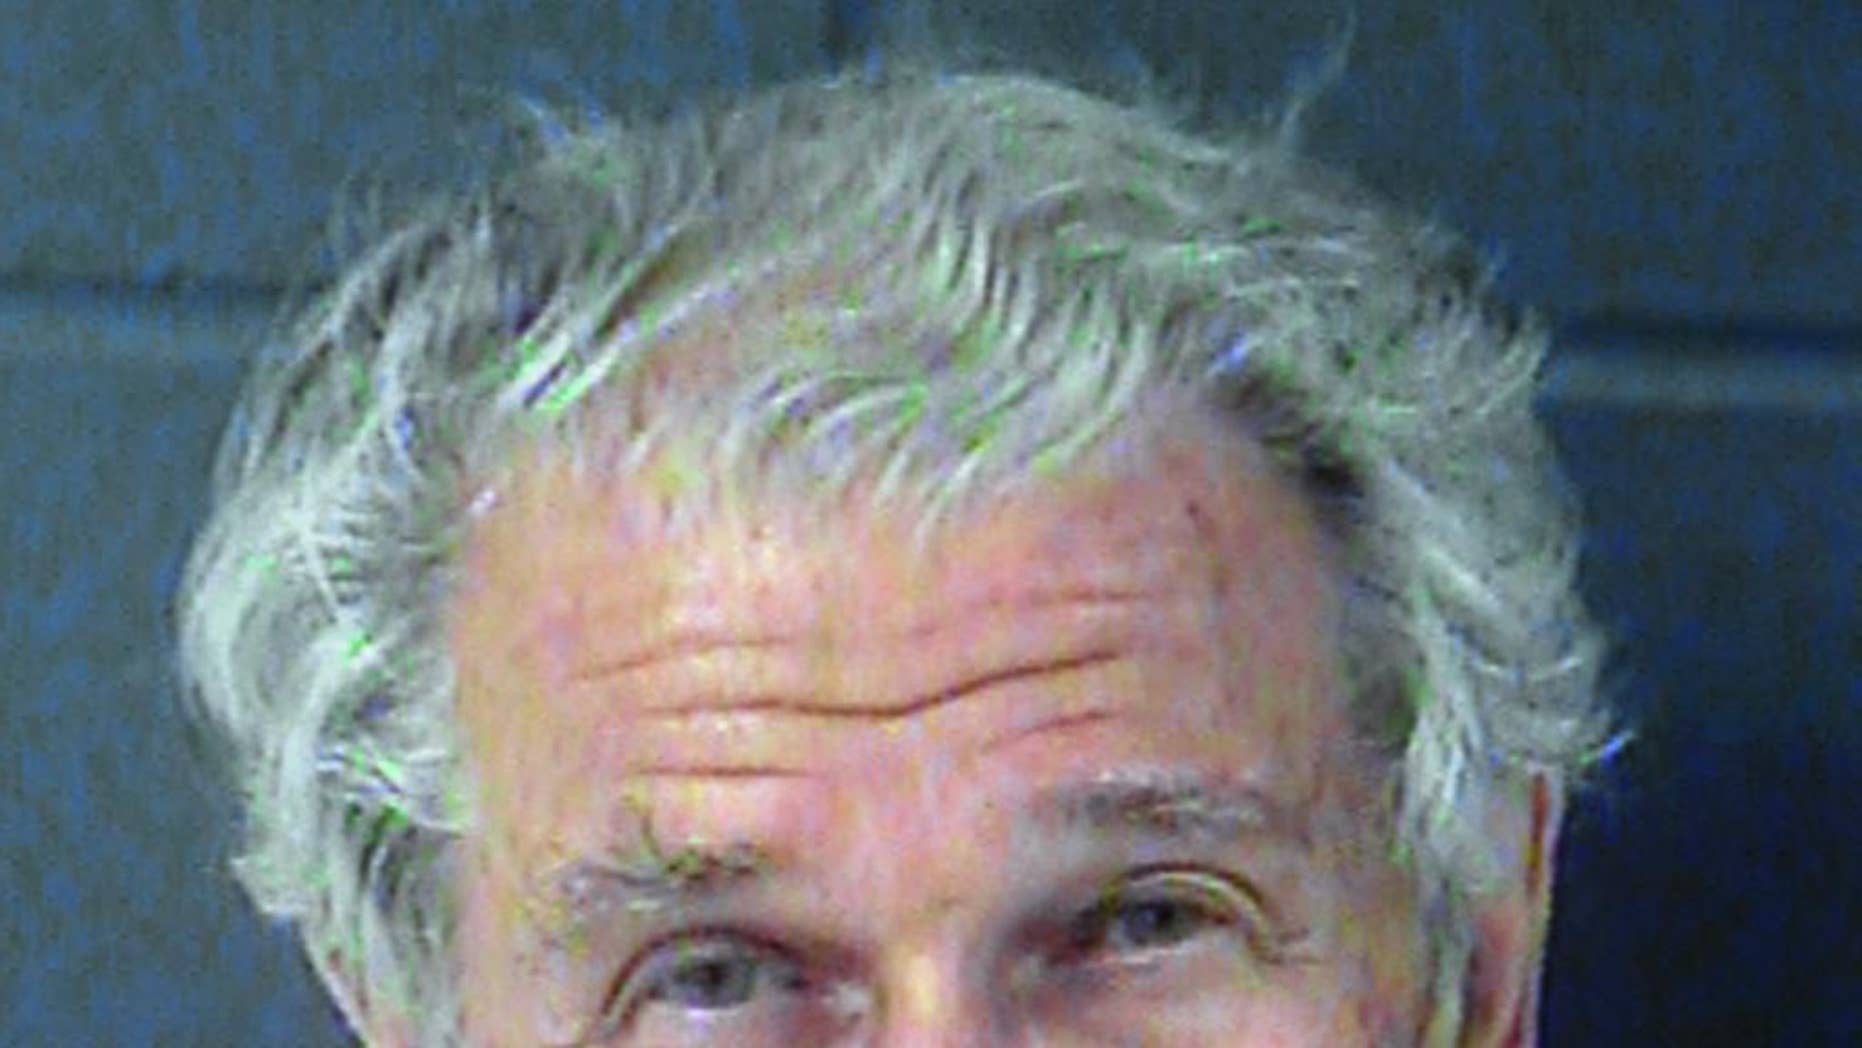 This June 2013 booking photo provided by the Junction City, Kan., Police Department shows Marshall Dion of Tucson, Ariz. (AP Photo/Junction City Police Department)